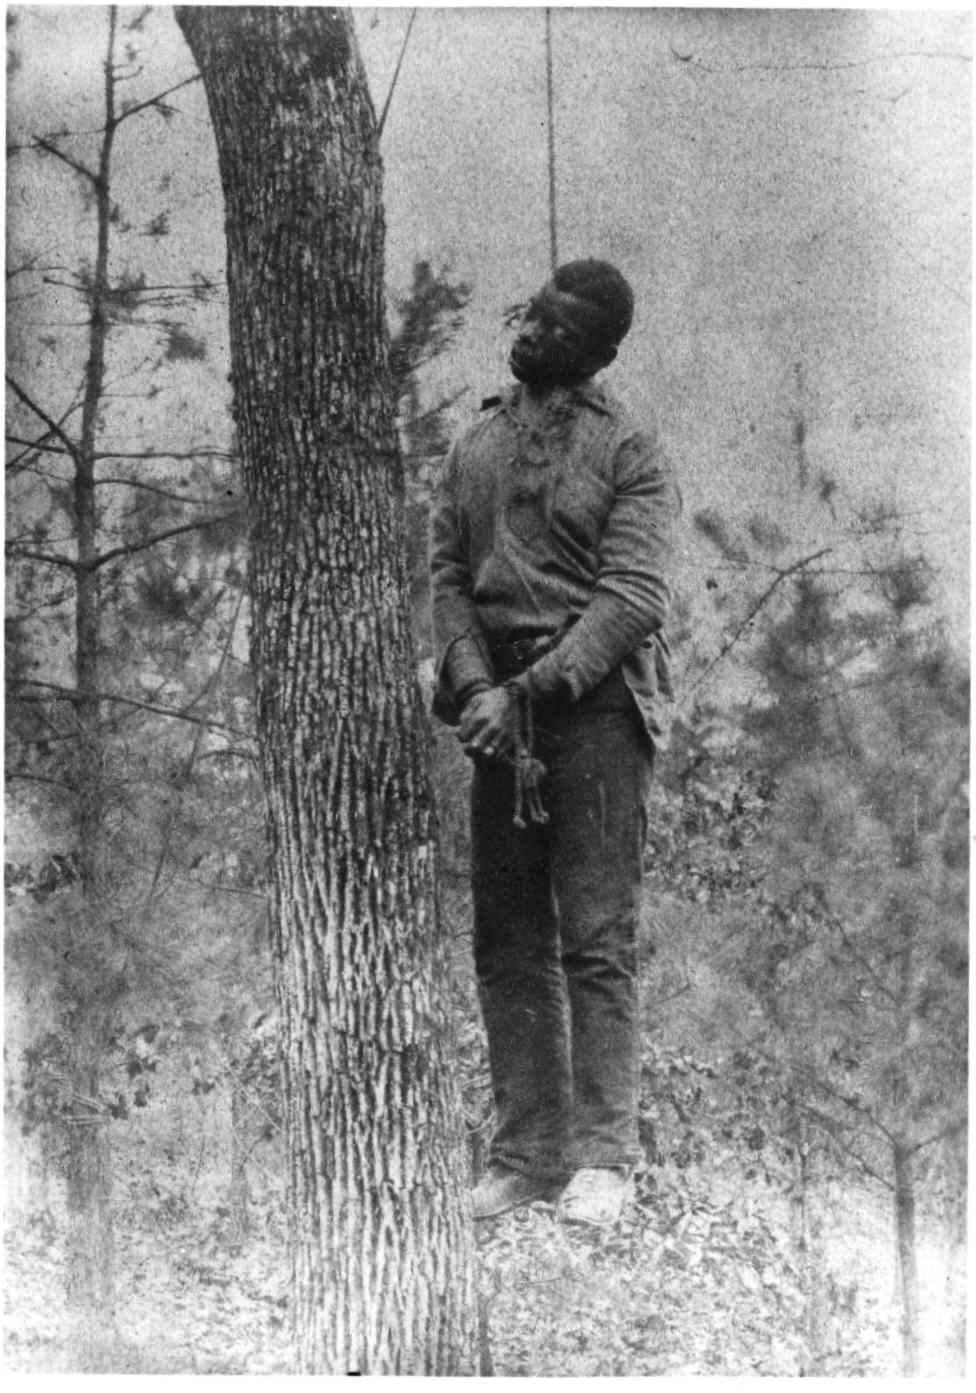 lynching of Black man